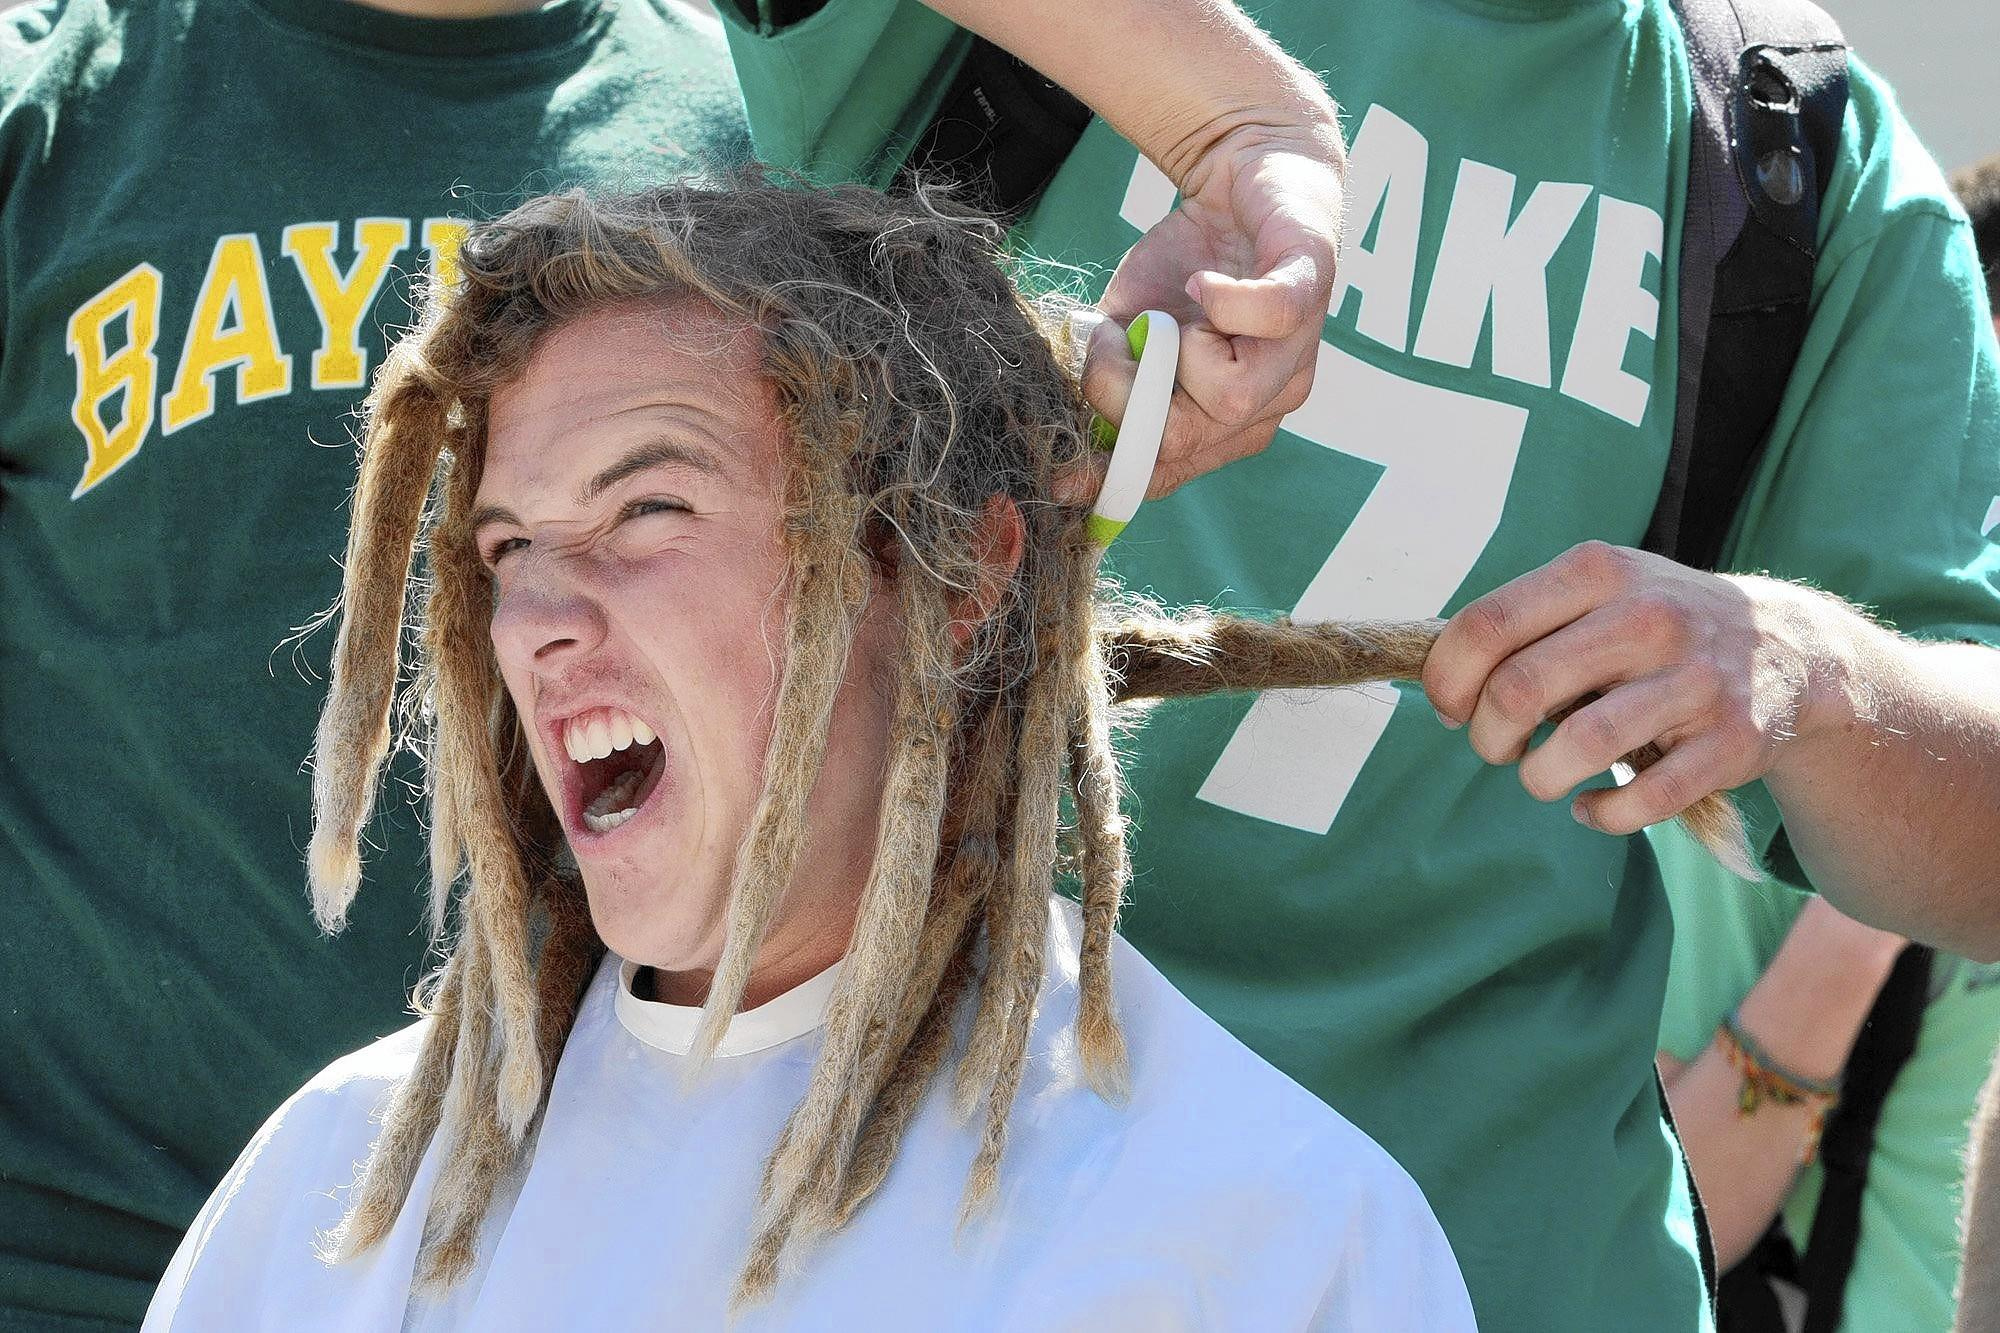 Griffin Van Amringe reacts as his dreadlocks are cut. Teachers and students at La Cañada High School shaved their heads for in support of pediatric cancer awareness and LCHS student Melissa Leo, who was recently diagnosed with leukemia, during the St. Baldrick's Day event on Monday, March 17, 2014.